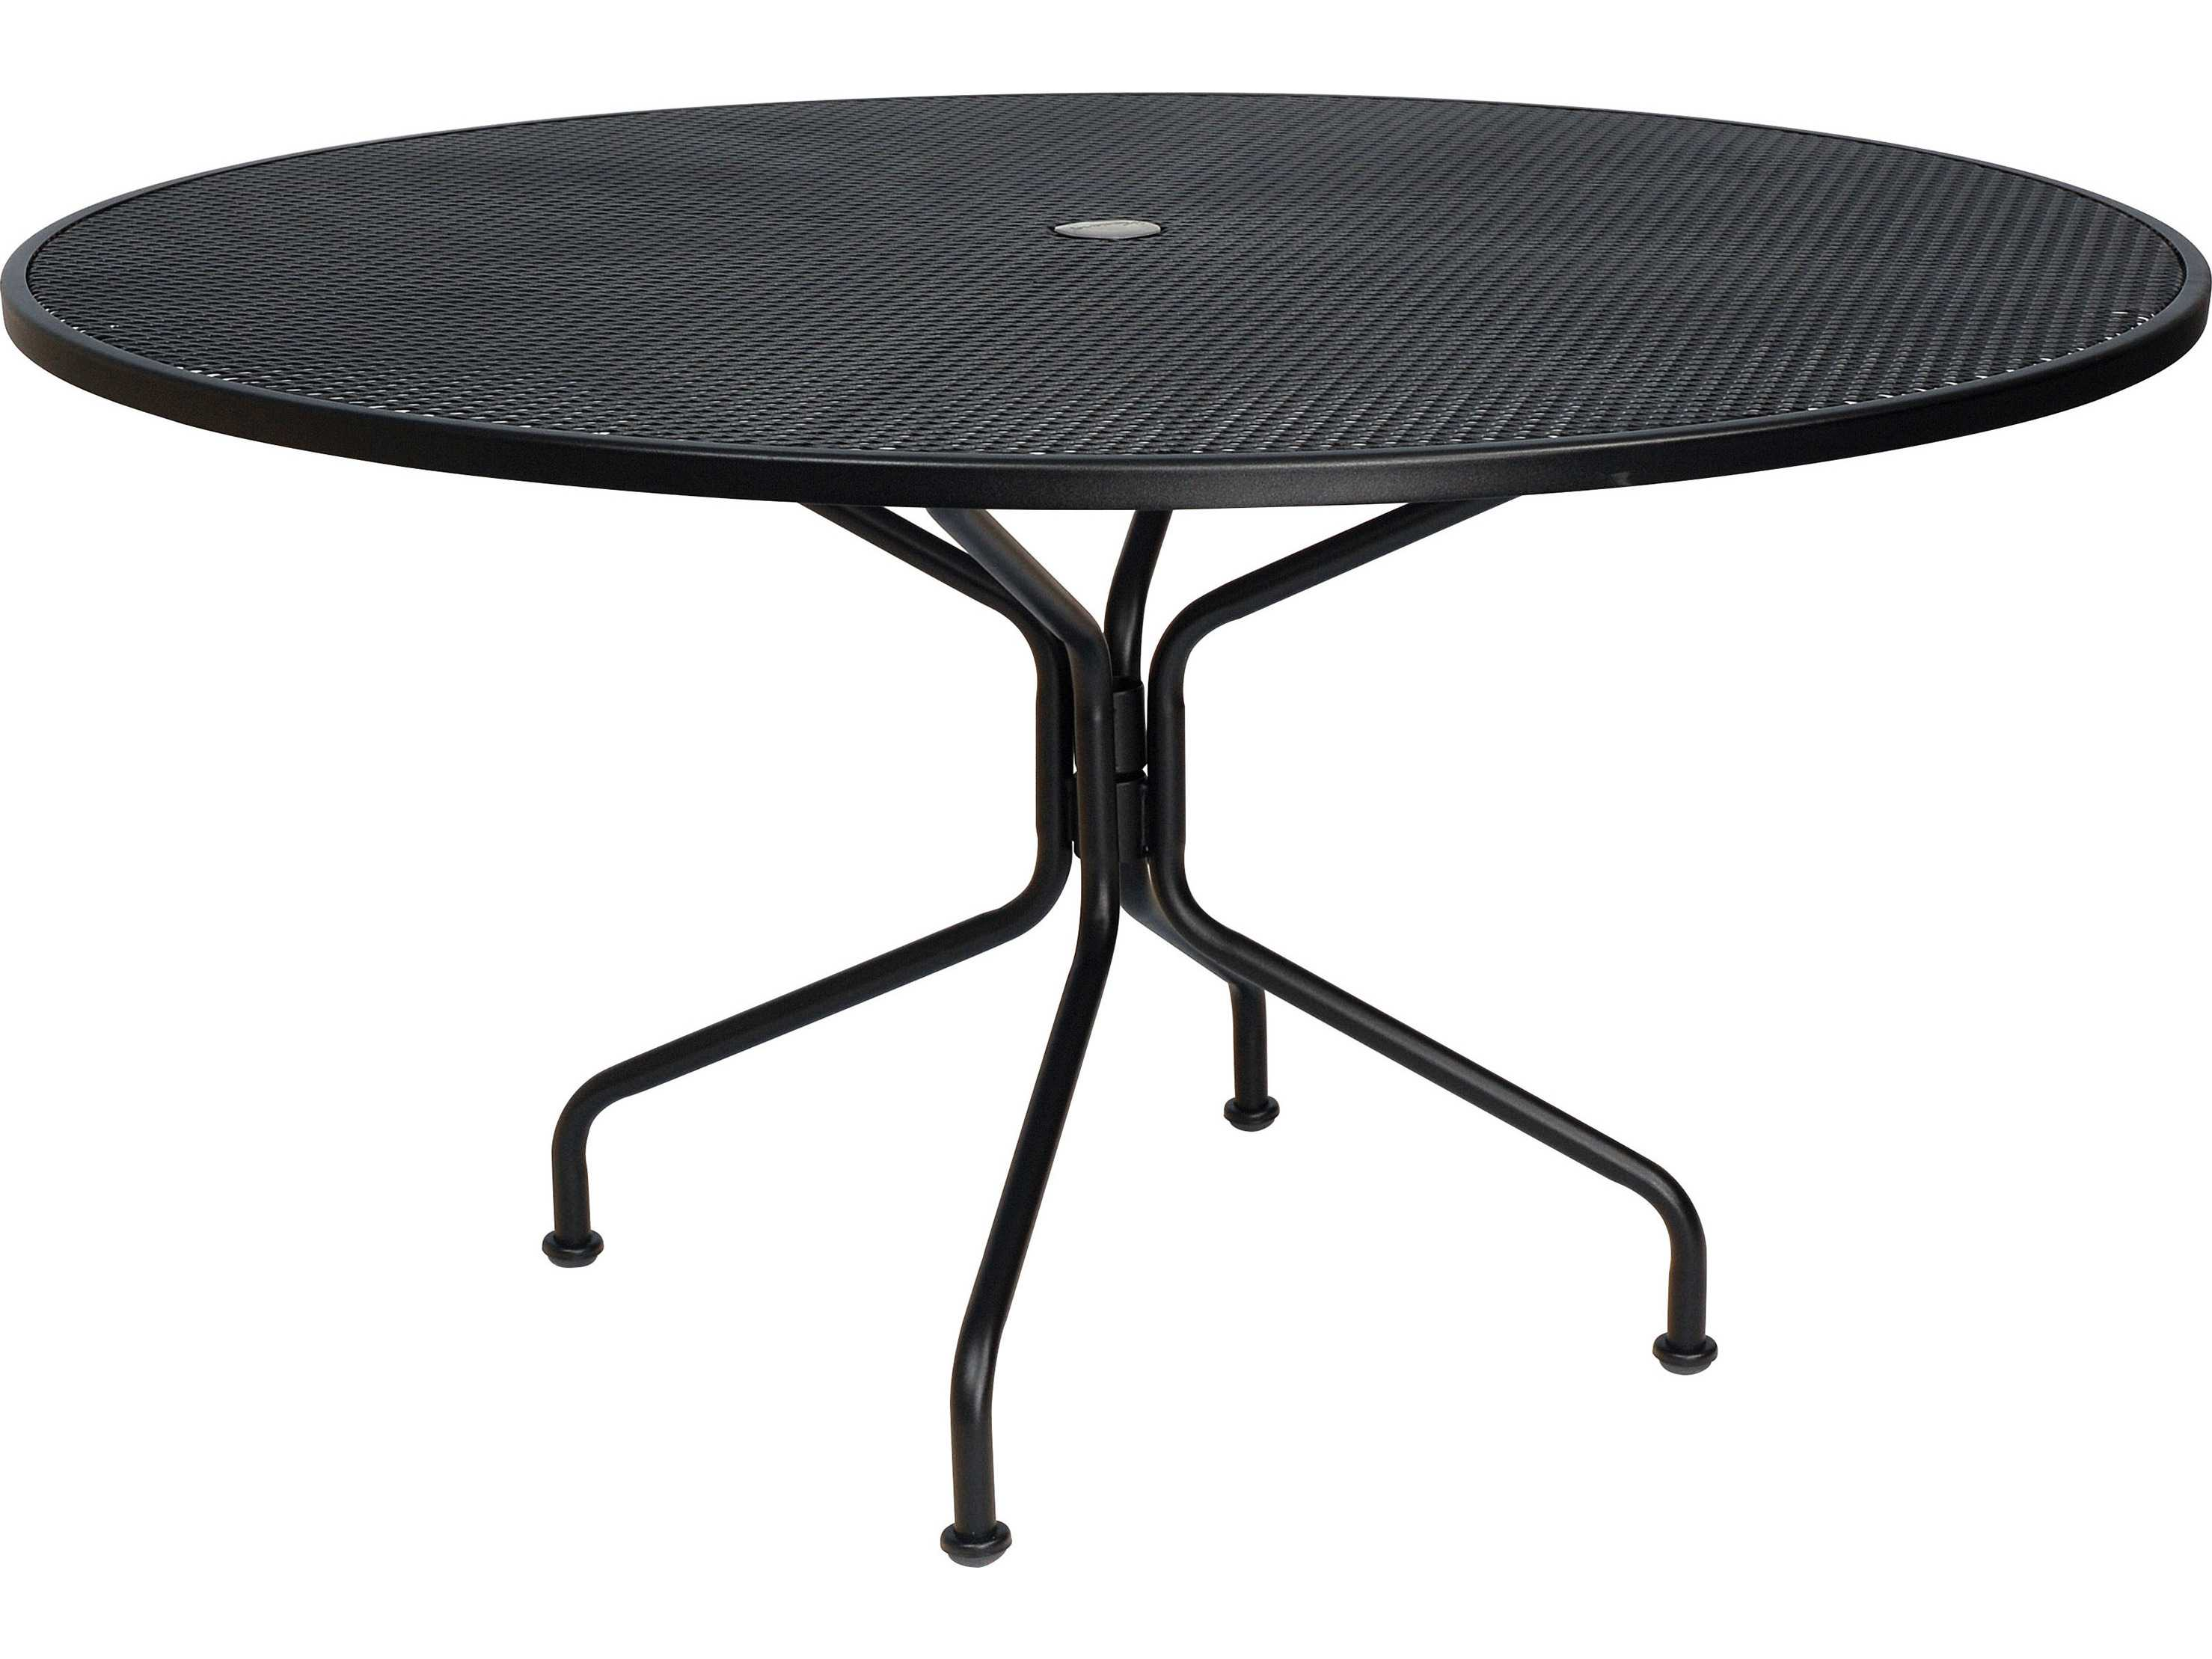 Dining 8 Spoke Table With Umbrella Hole Wr190227 Wrought Iron Tables